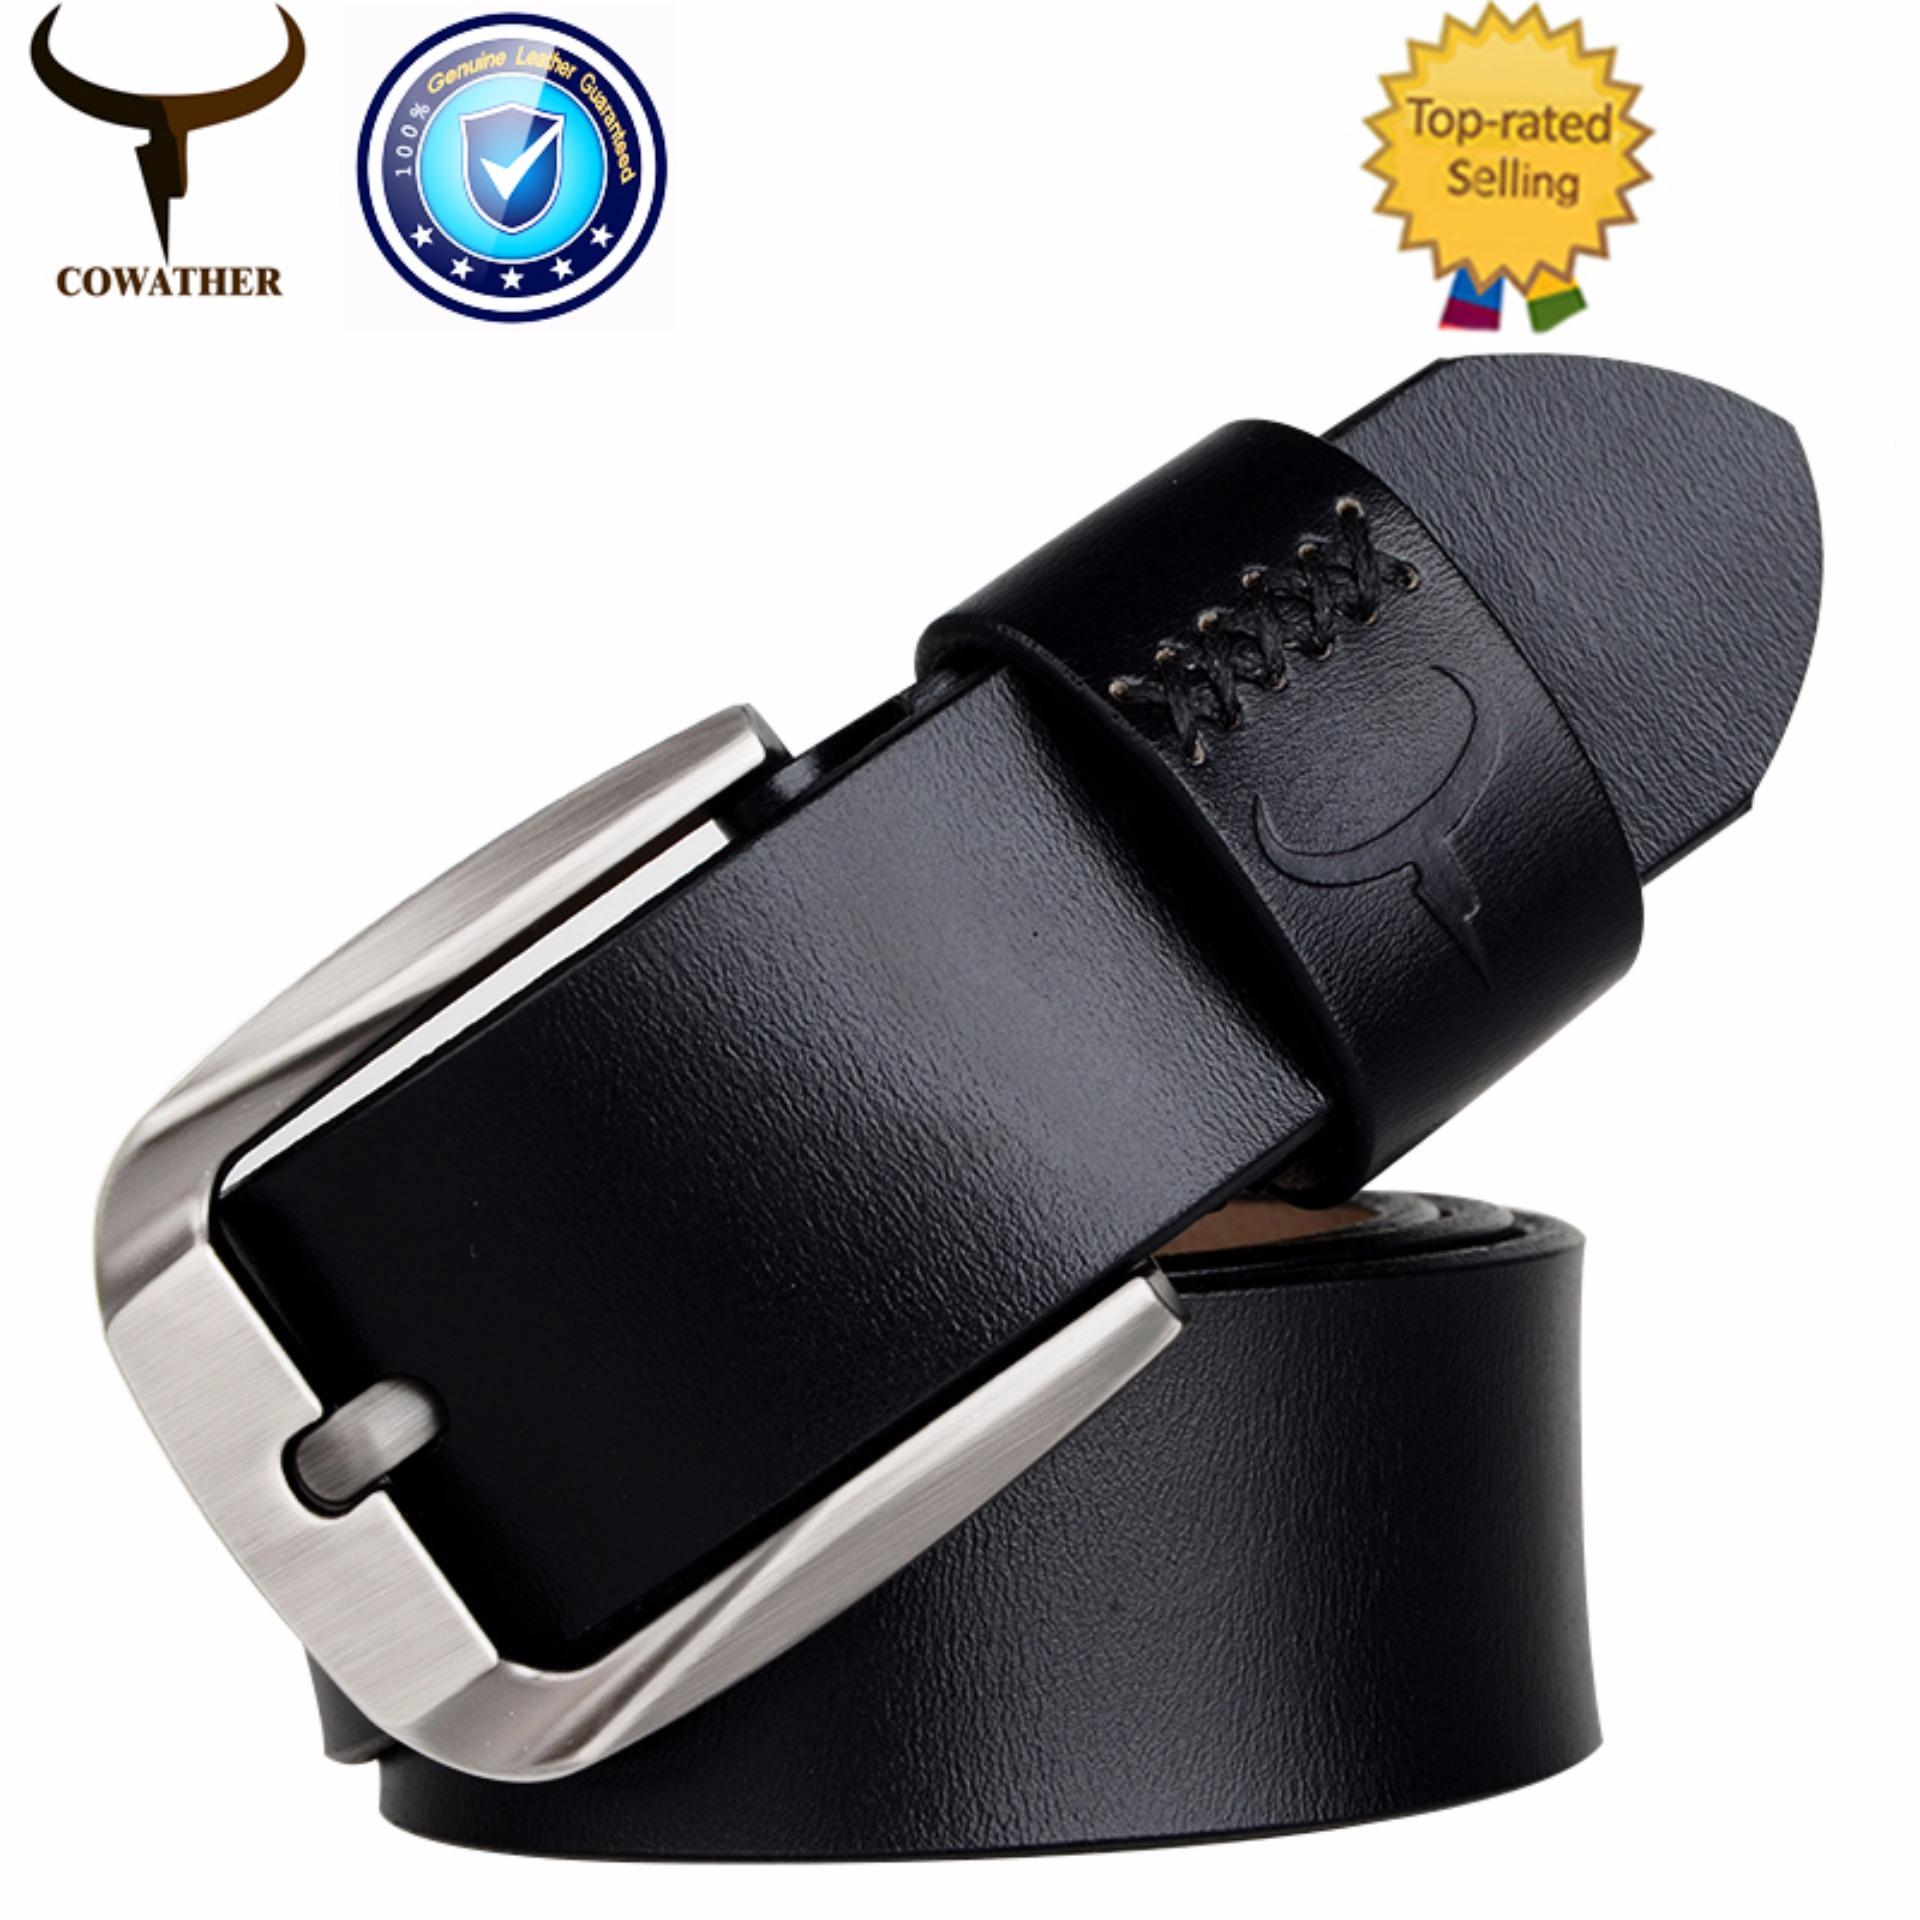 Toko Cowather Kulit Asli Pria Ratchet Dress Belt Kulit Halus Reversible Bulu Edge Belt Cowather Di Tiongkok